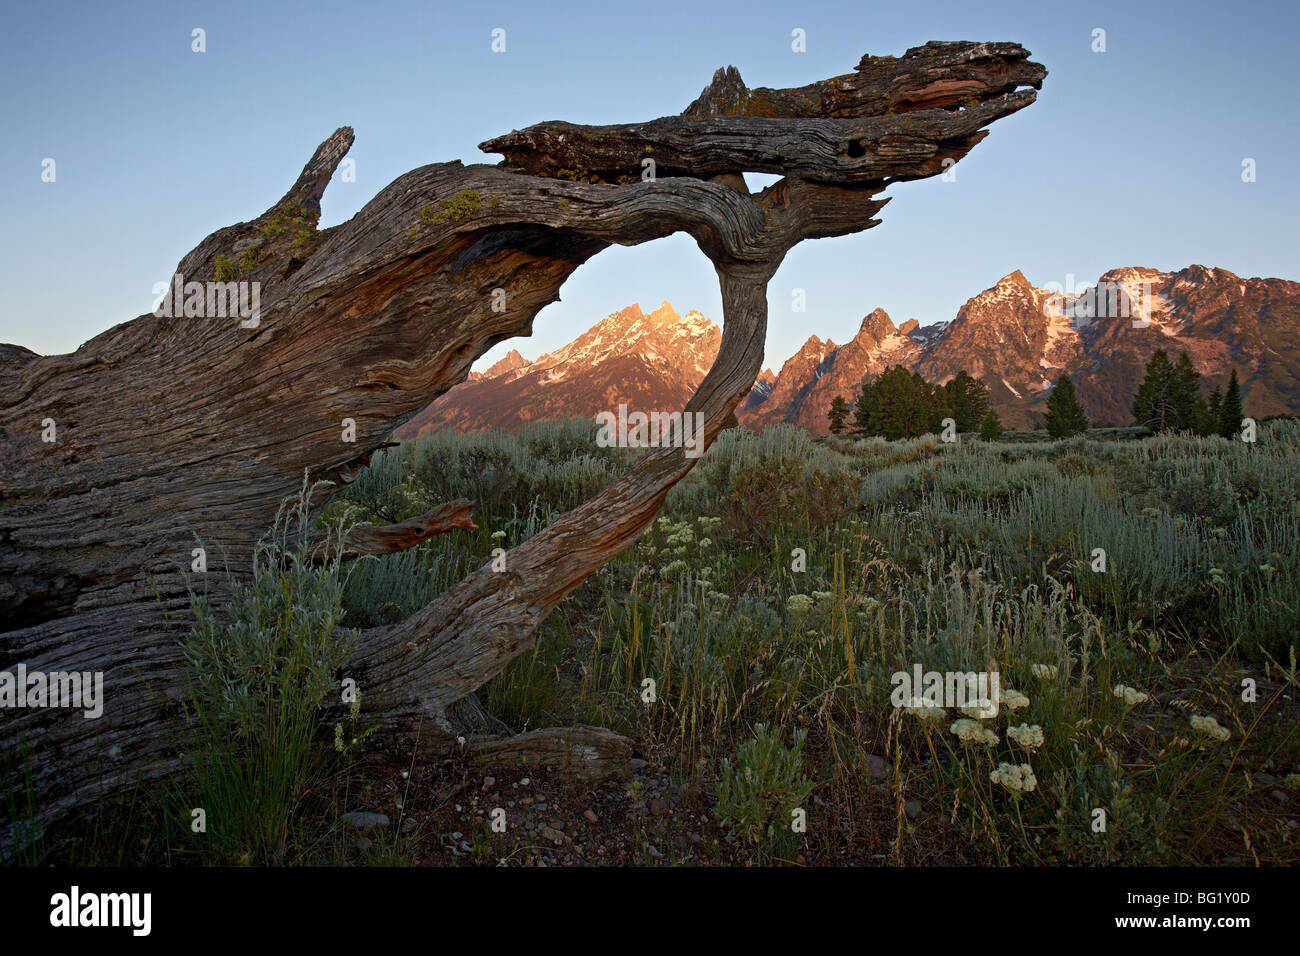 Tetons at first light, Grand Teton National Park, Wyoming, United States of America, North America - Stock Image